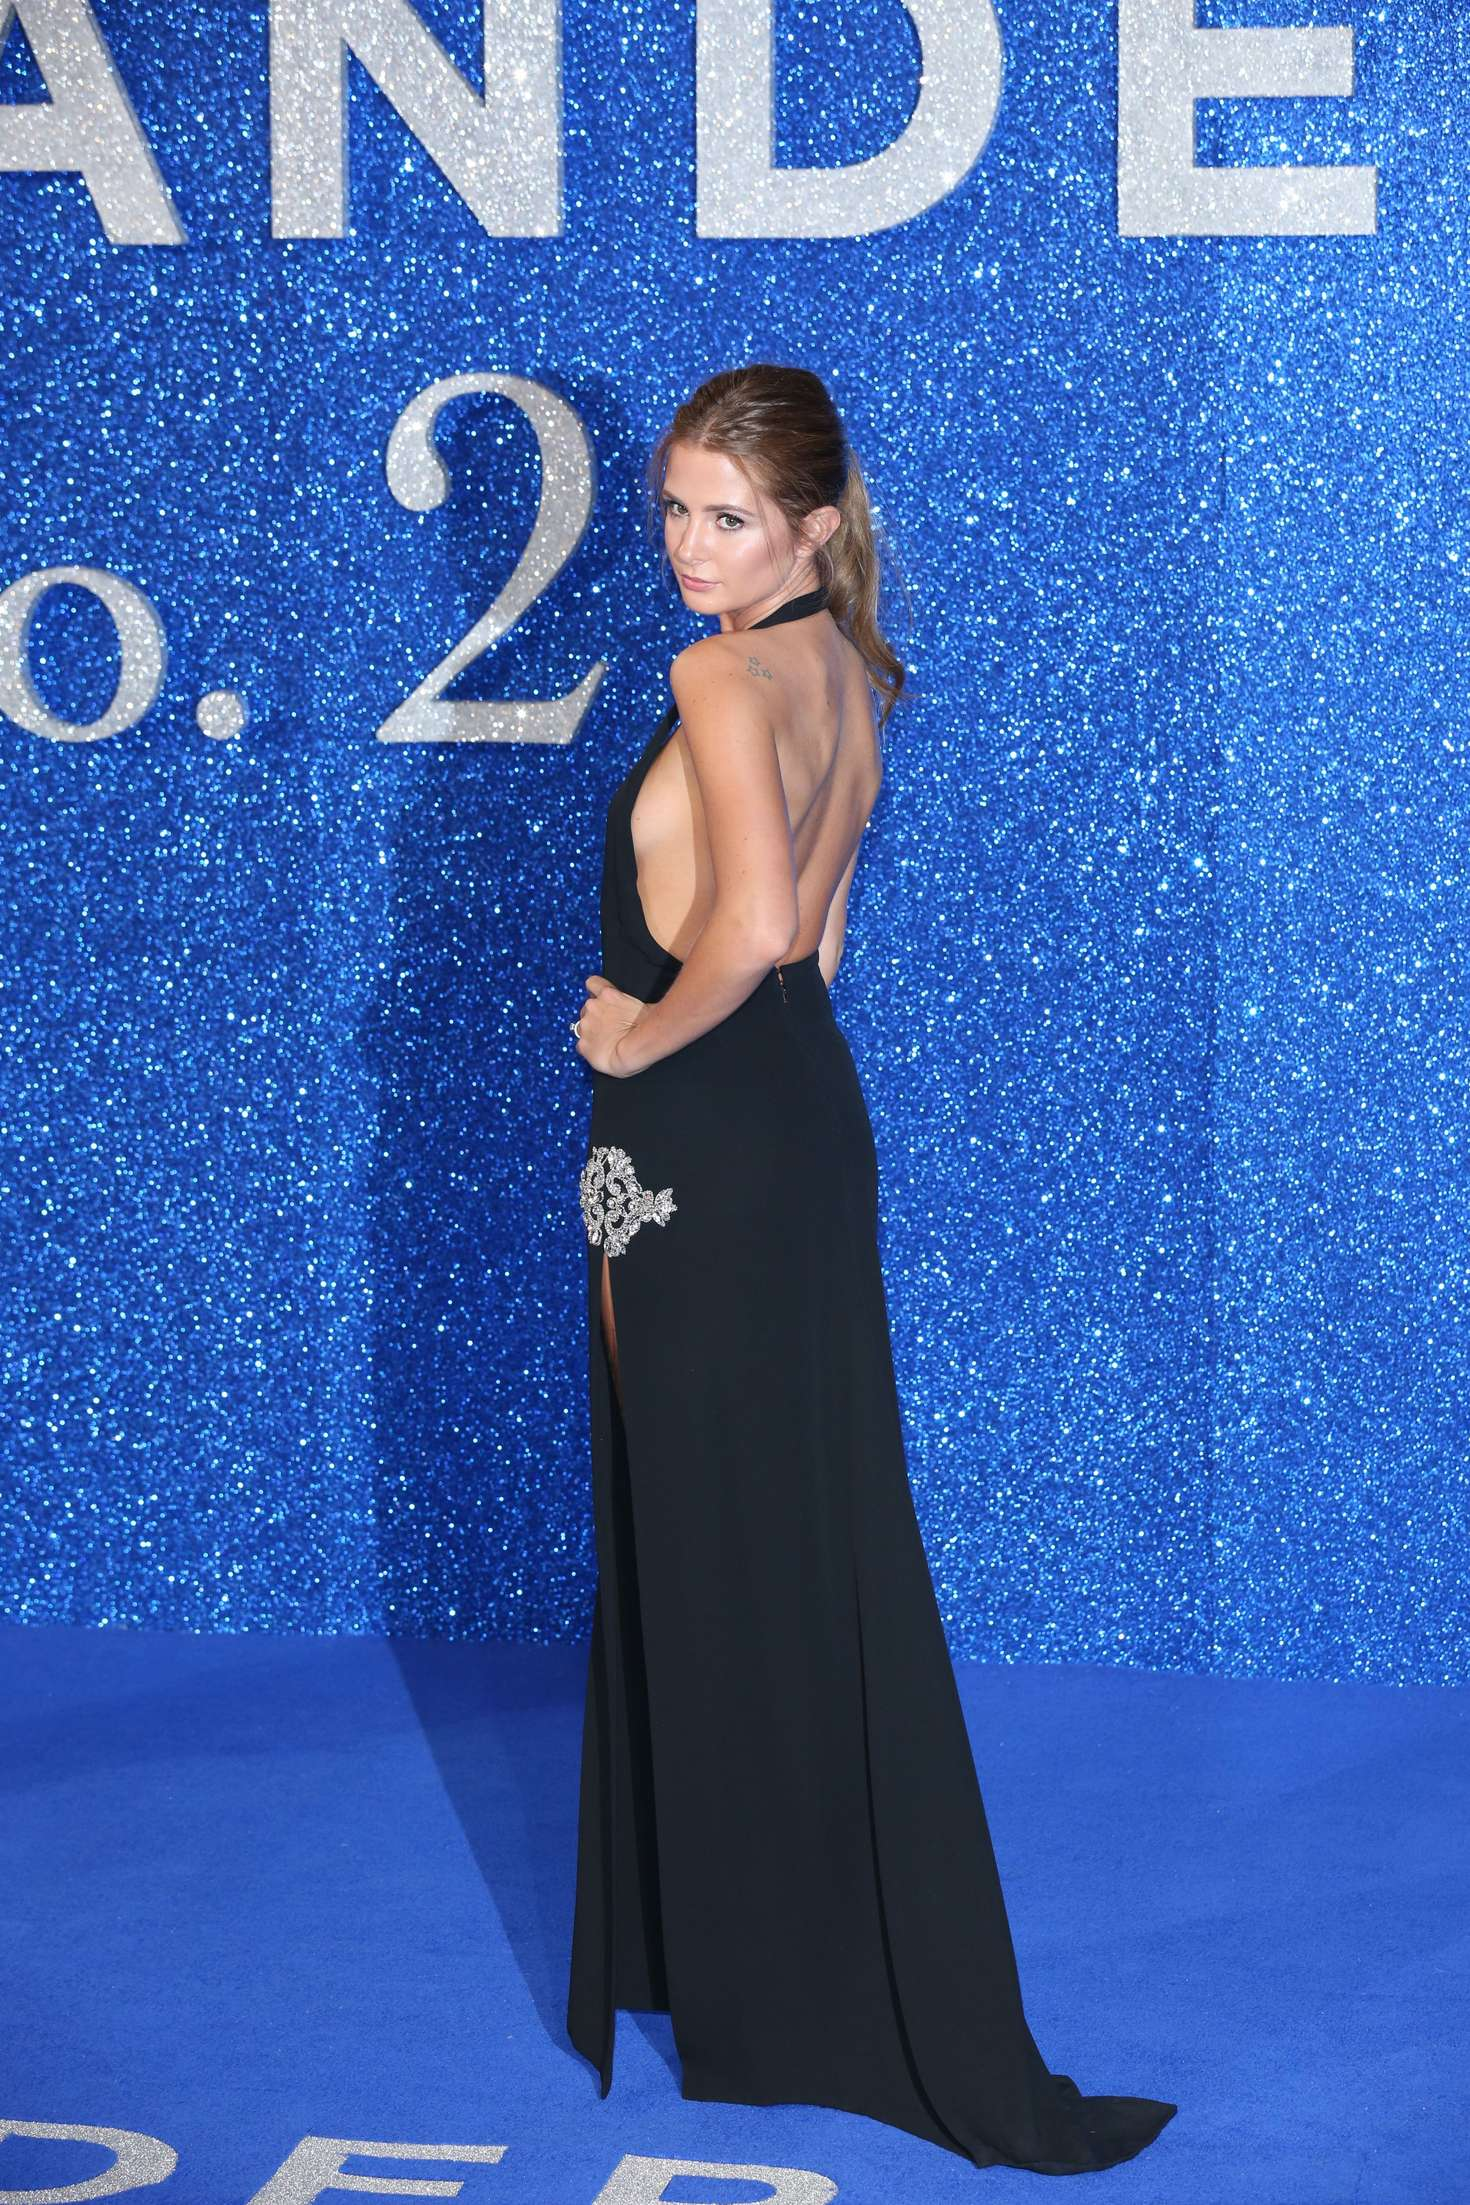 Millie Mackintosh Zoolander Premiere in London